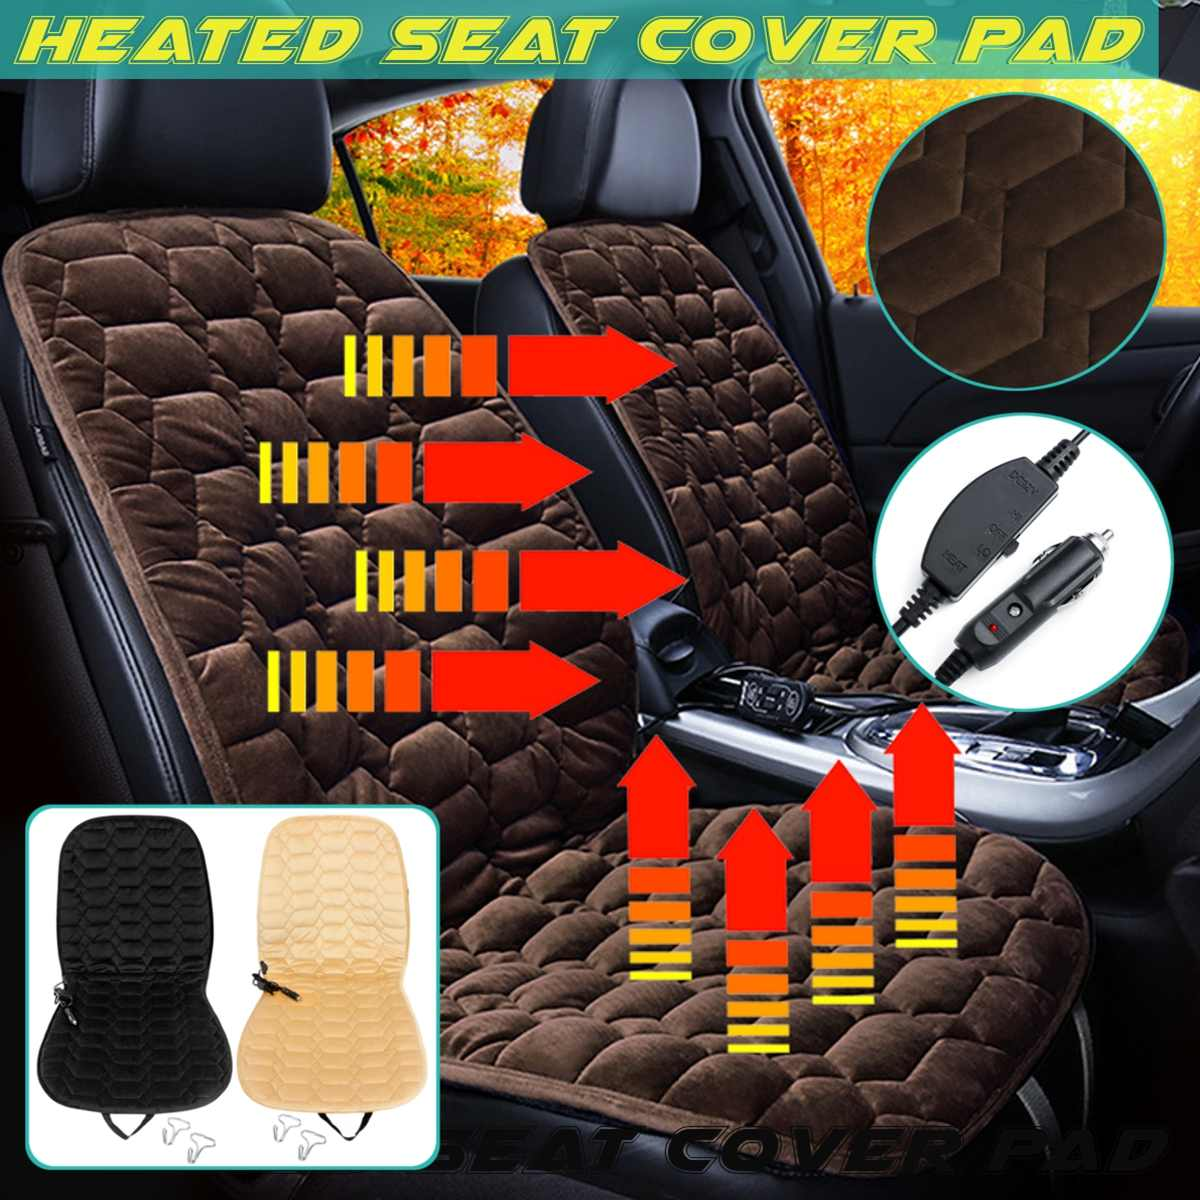 12V Plush Car Heated Seat Covers Cushion Seat Warmer Winter Household Cover Electric Heating Mat universal heating Heater 2017 brands new 12v electric car heated seat covers universal winter car seat cushion heating pads keep warm single cushions